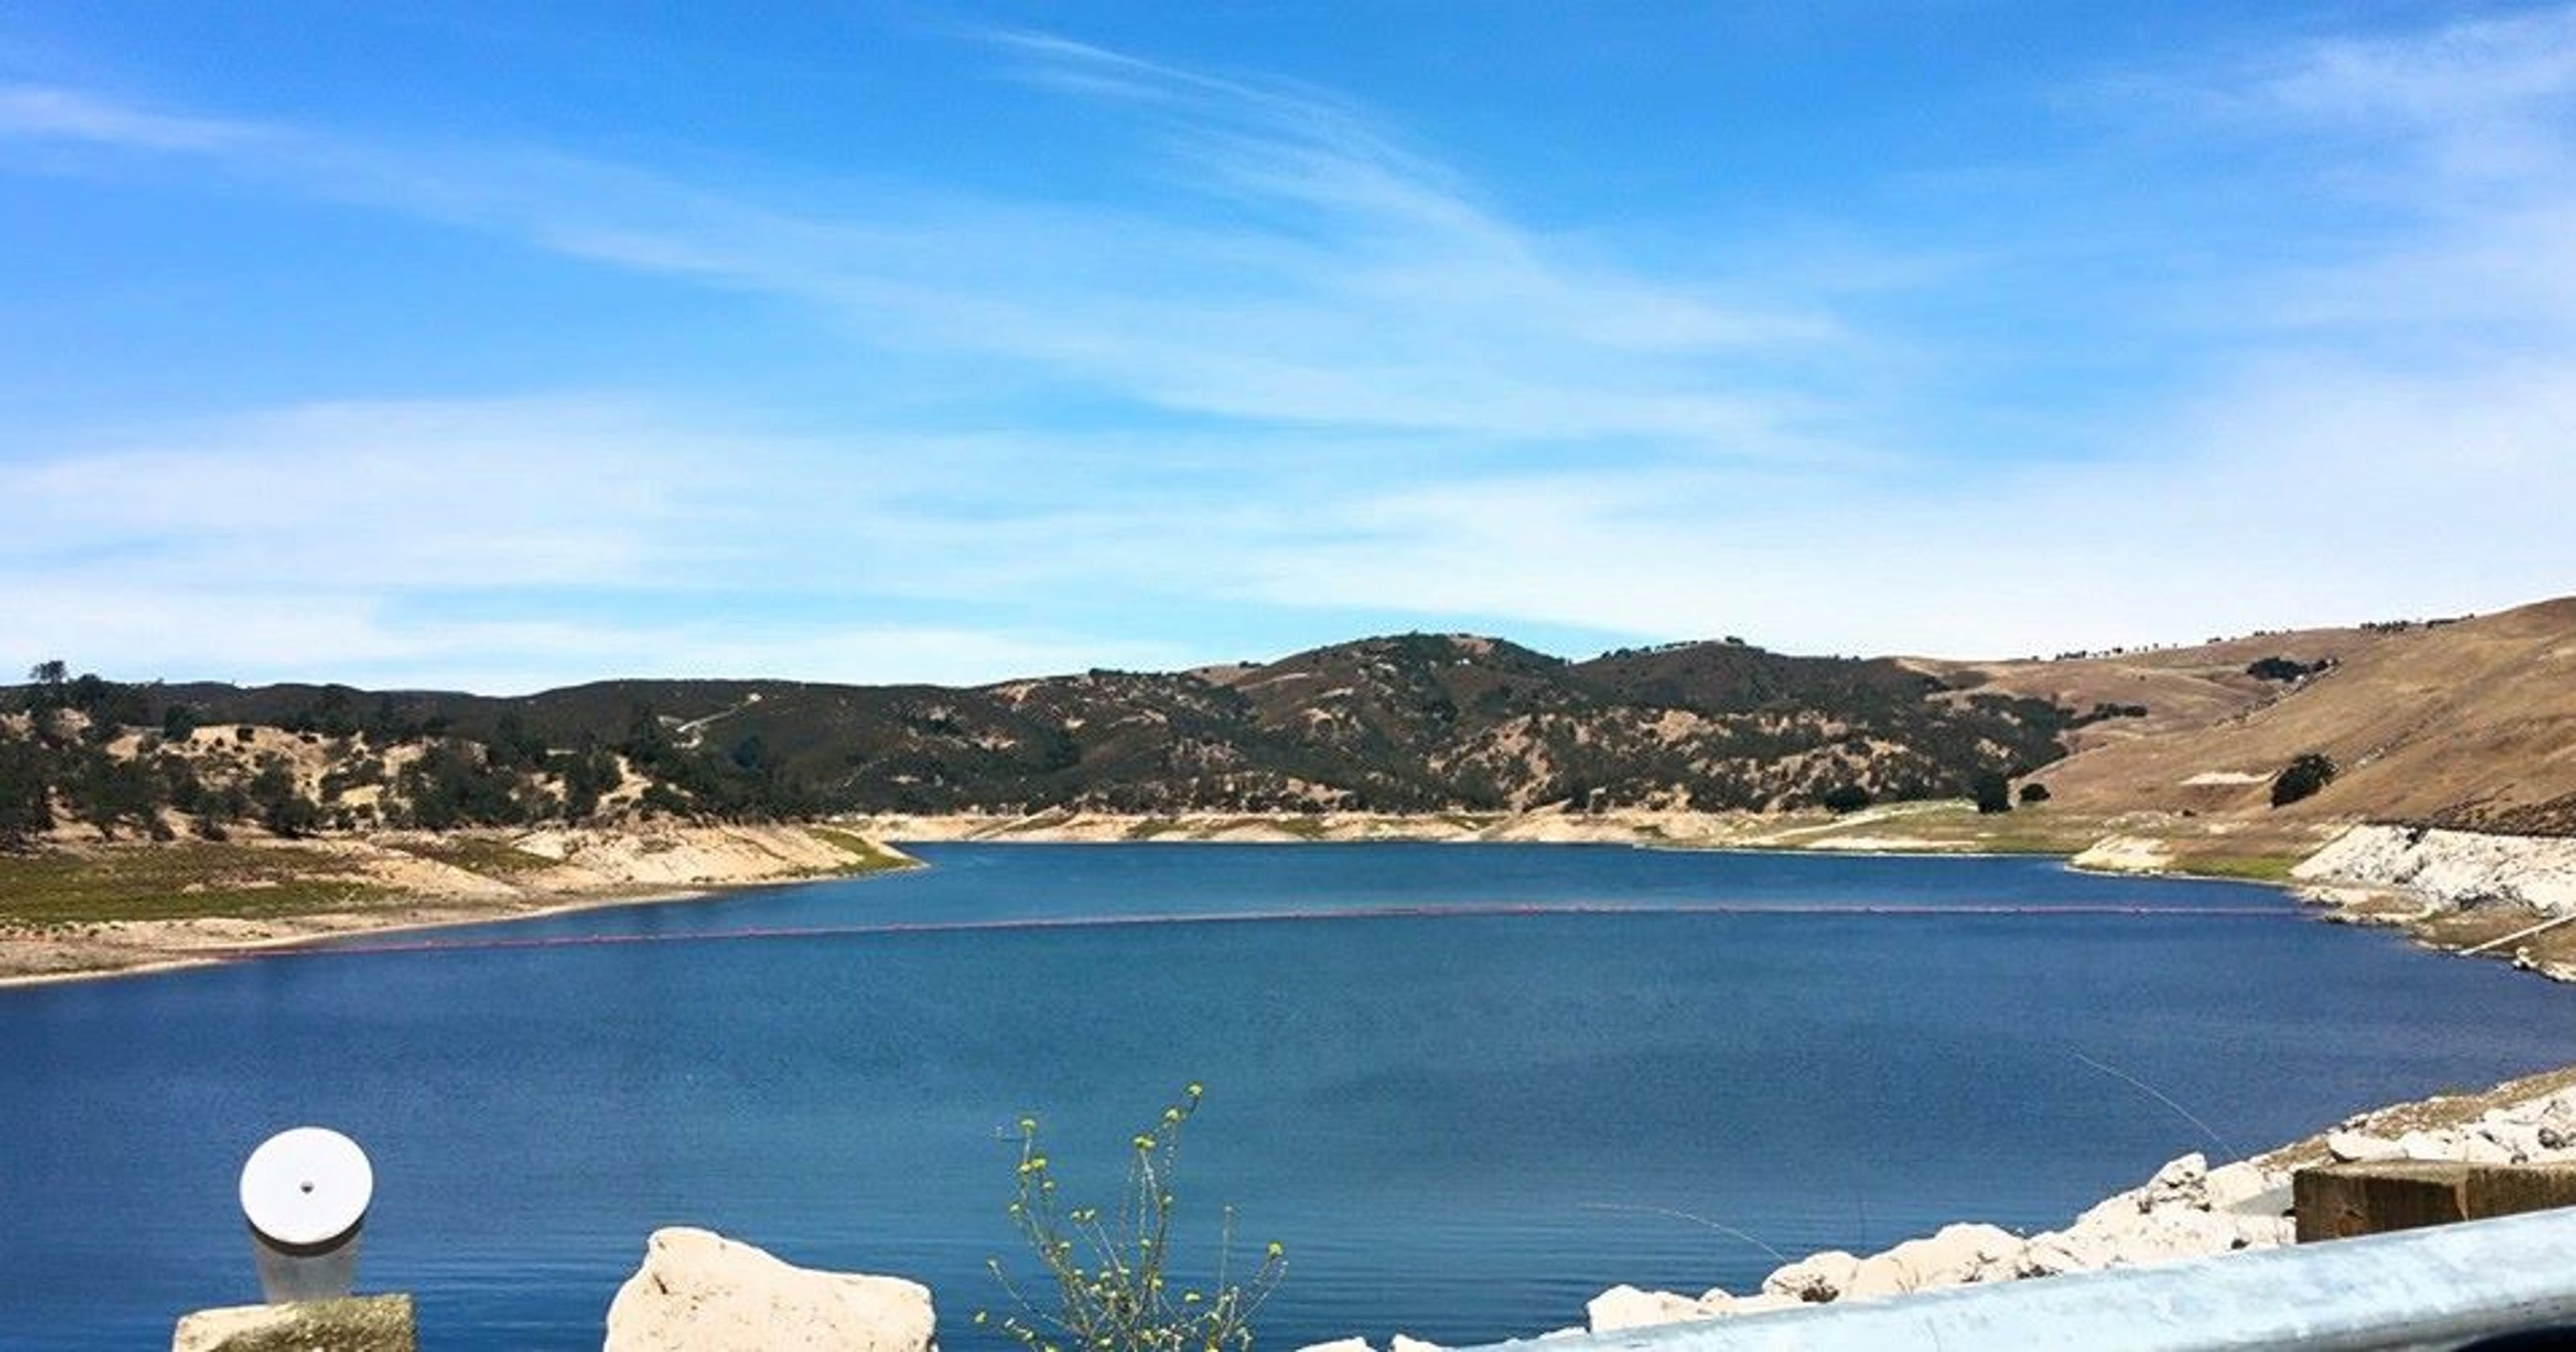 King City man drowns at Lake Nacimiento, says county sheriff's office